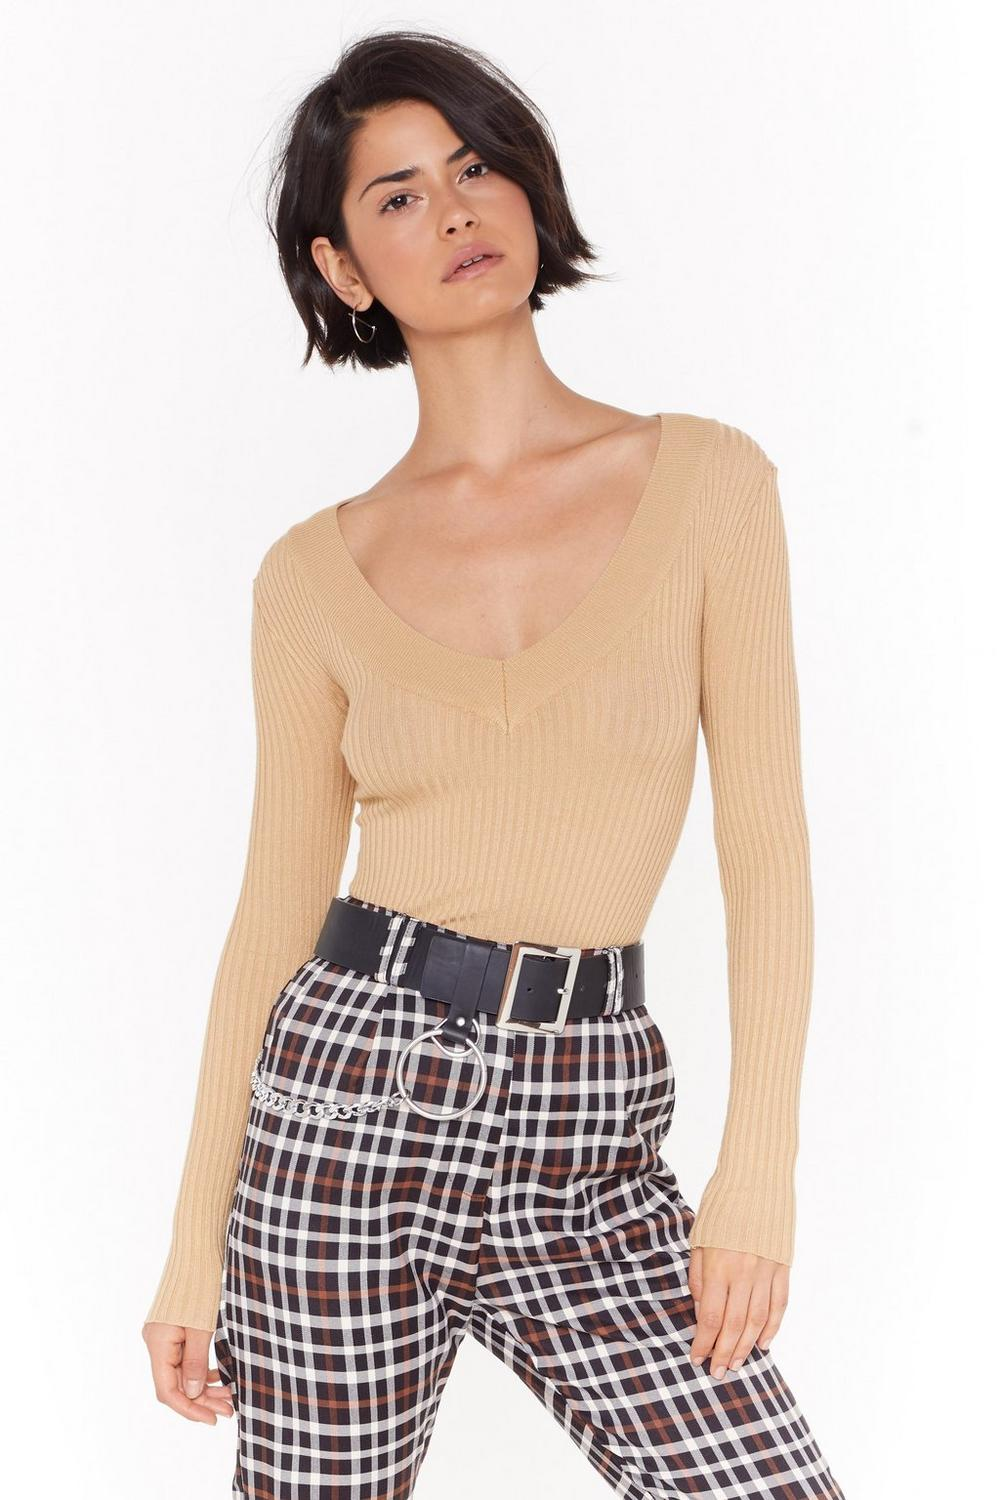 We're Meant To V Ribbed Knit Sweater by Nasty Gal